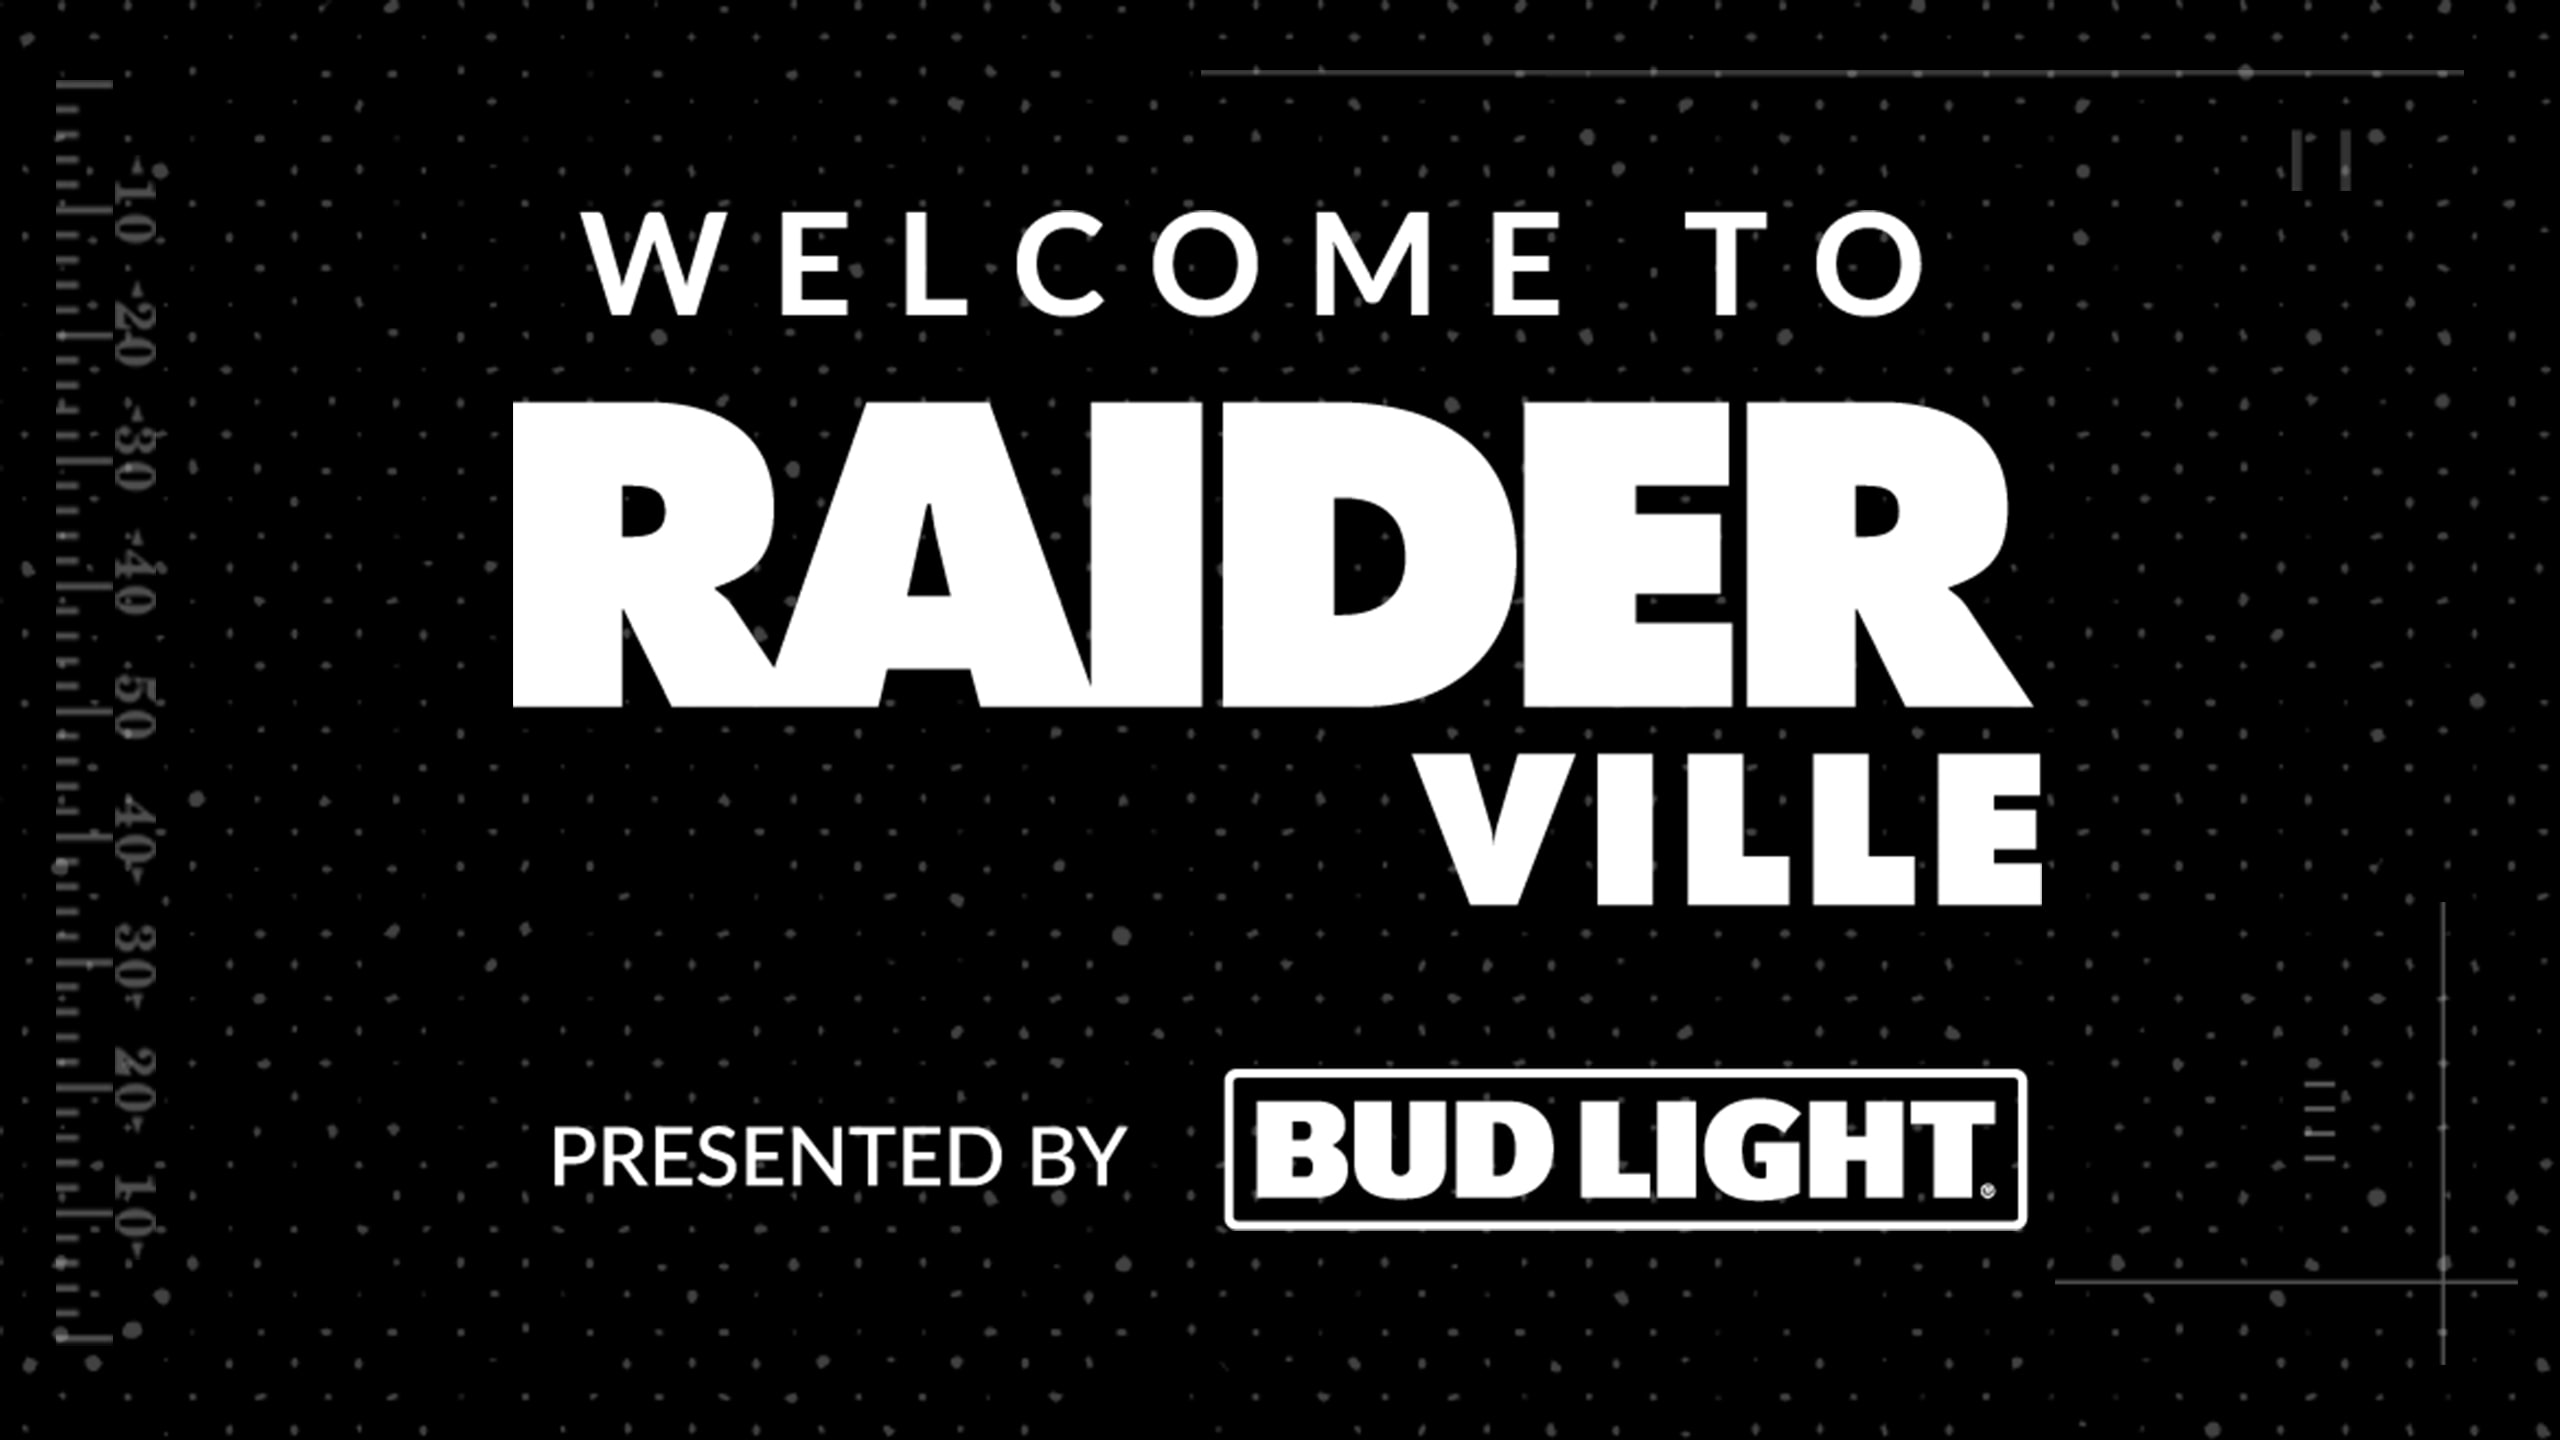 Raiderville Presented By Bud Light